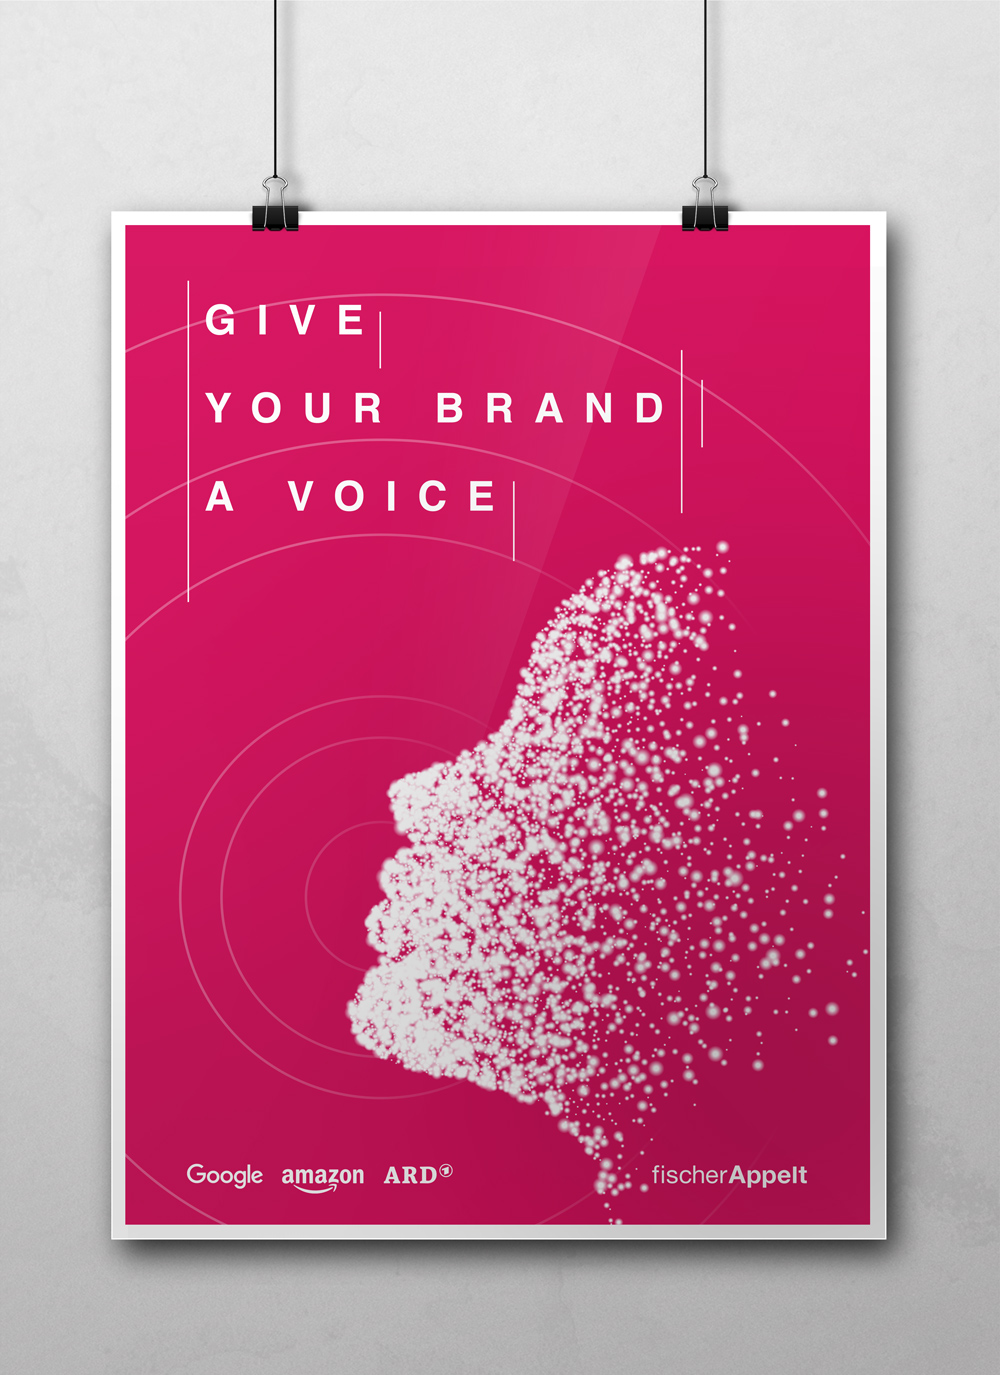 brand-voice-event-poster.jpg